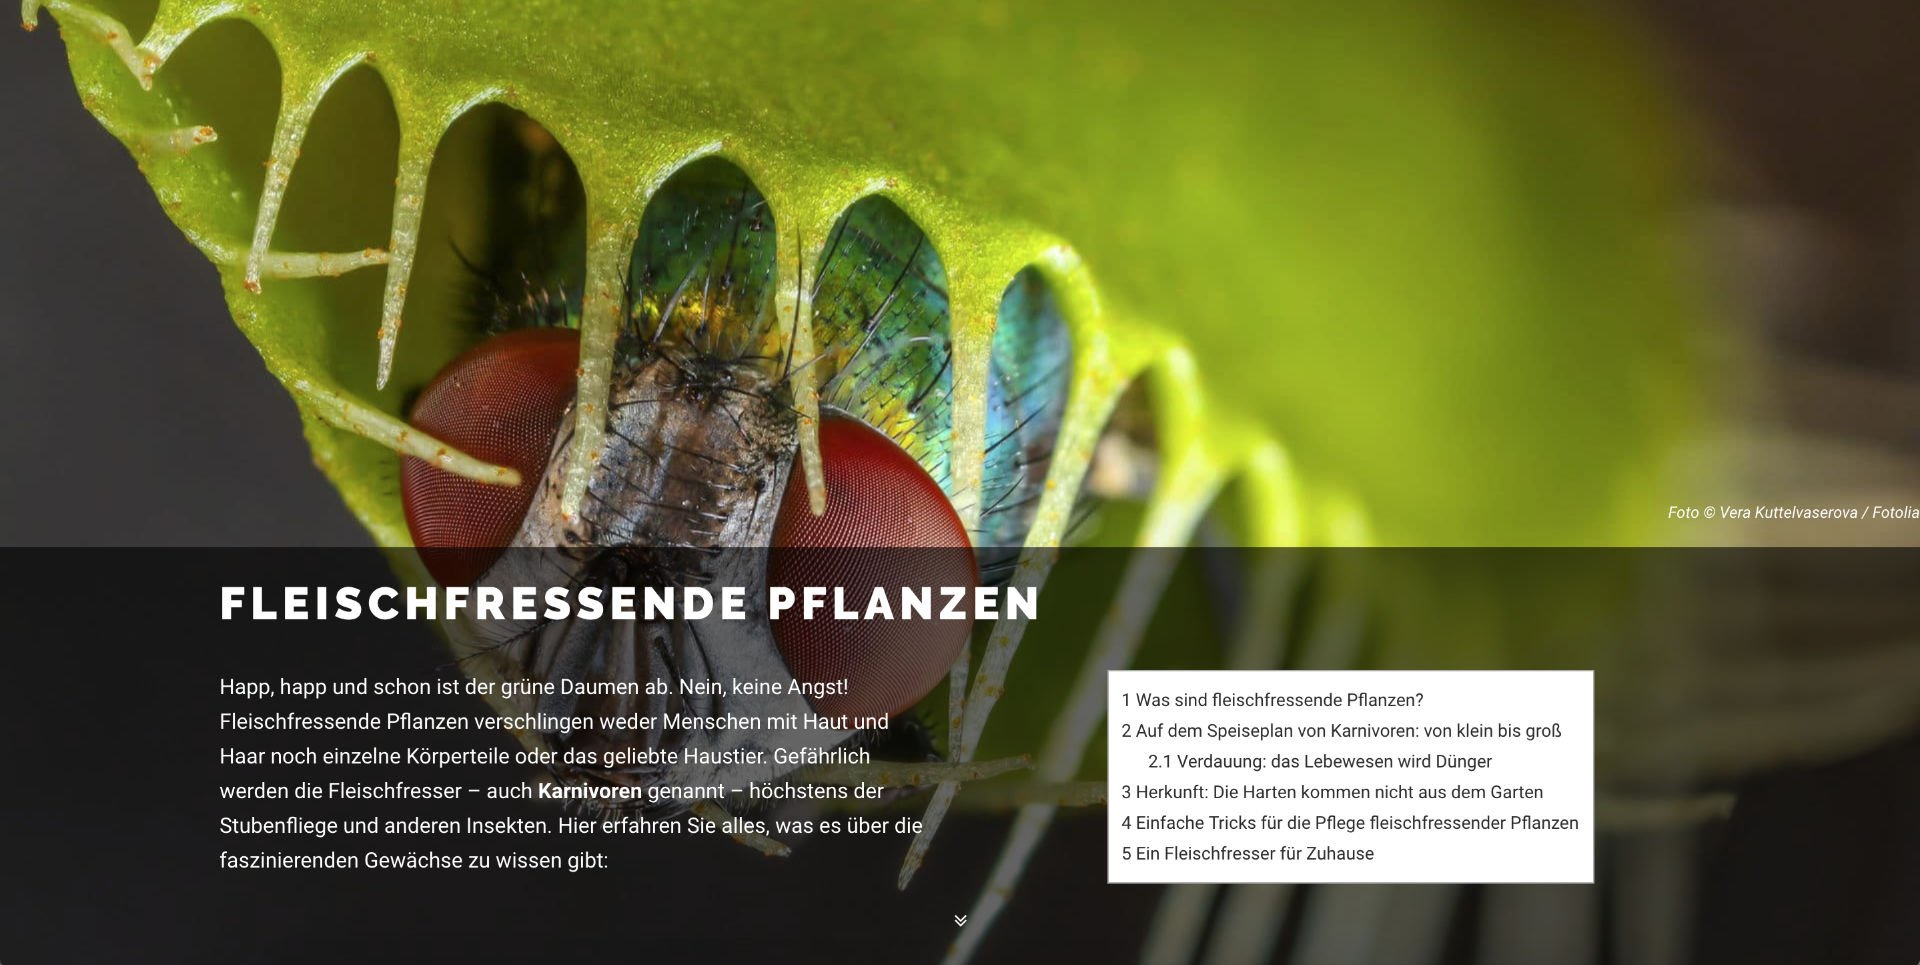 Referenz (Webdesign): fleischfressende-pflanze.com